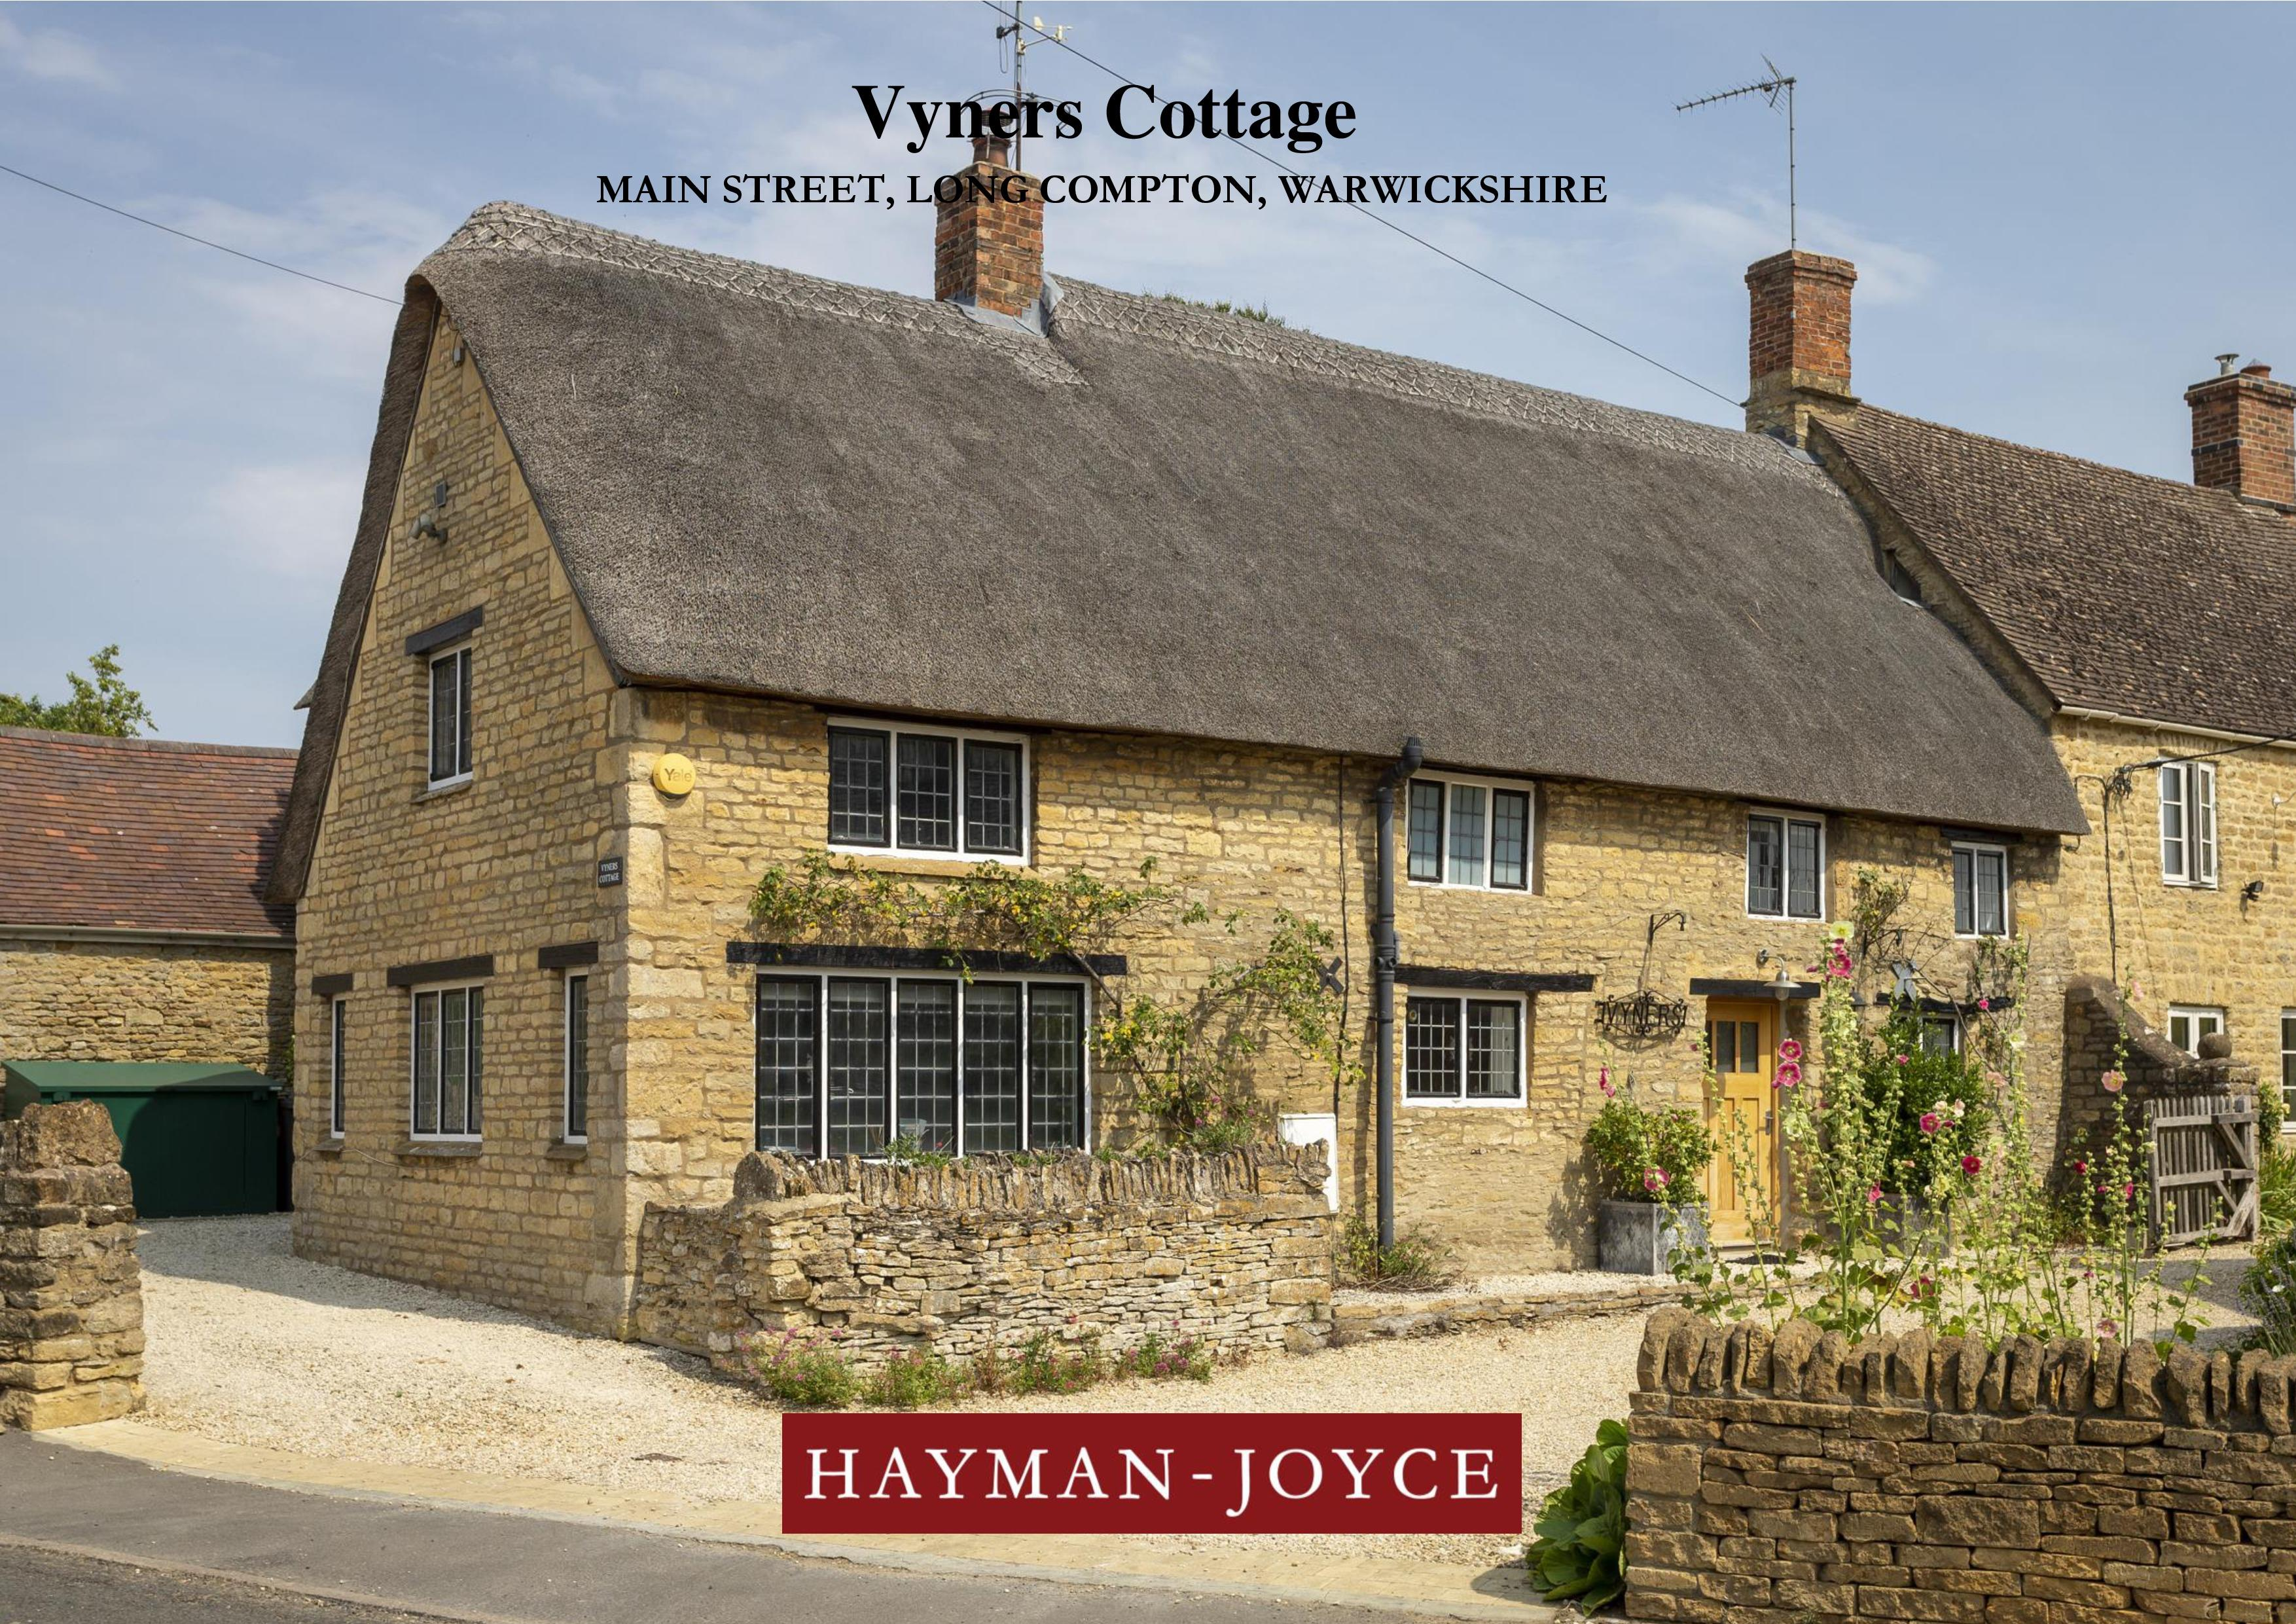 Vyners Cottage in the Daily Express